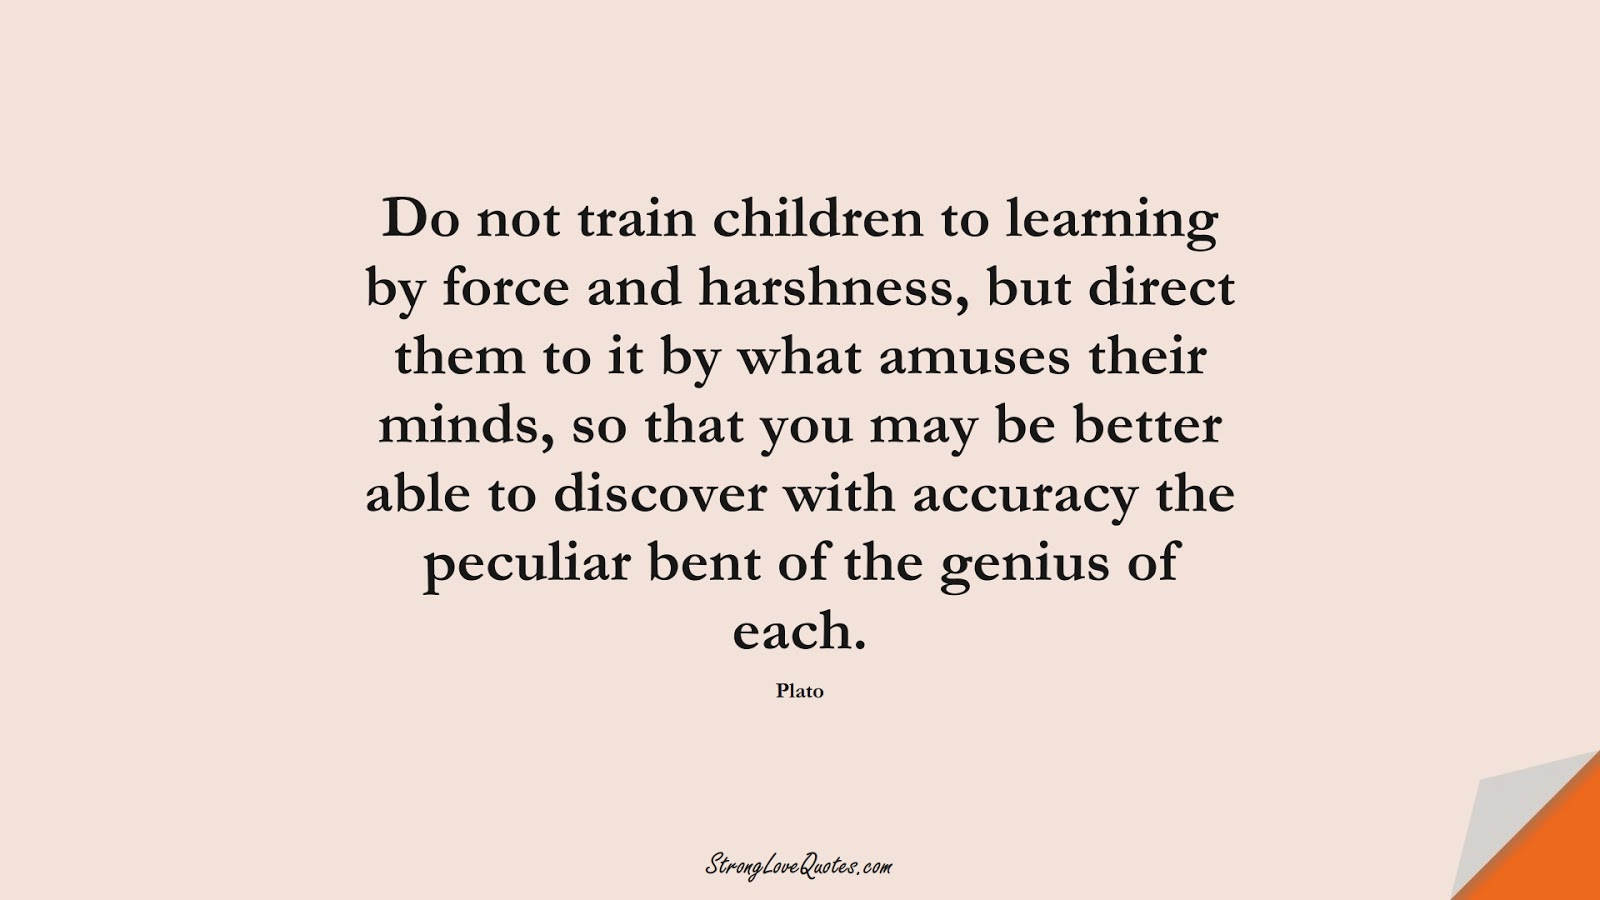 Do not train children to learning by force and harshness, but direct them to it by what amuses their minds, so that you may be better able to discover with accuracy the peculiar bent of the genius of each. (Plato);  #EducationQuotes